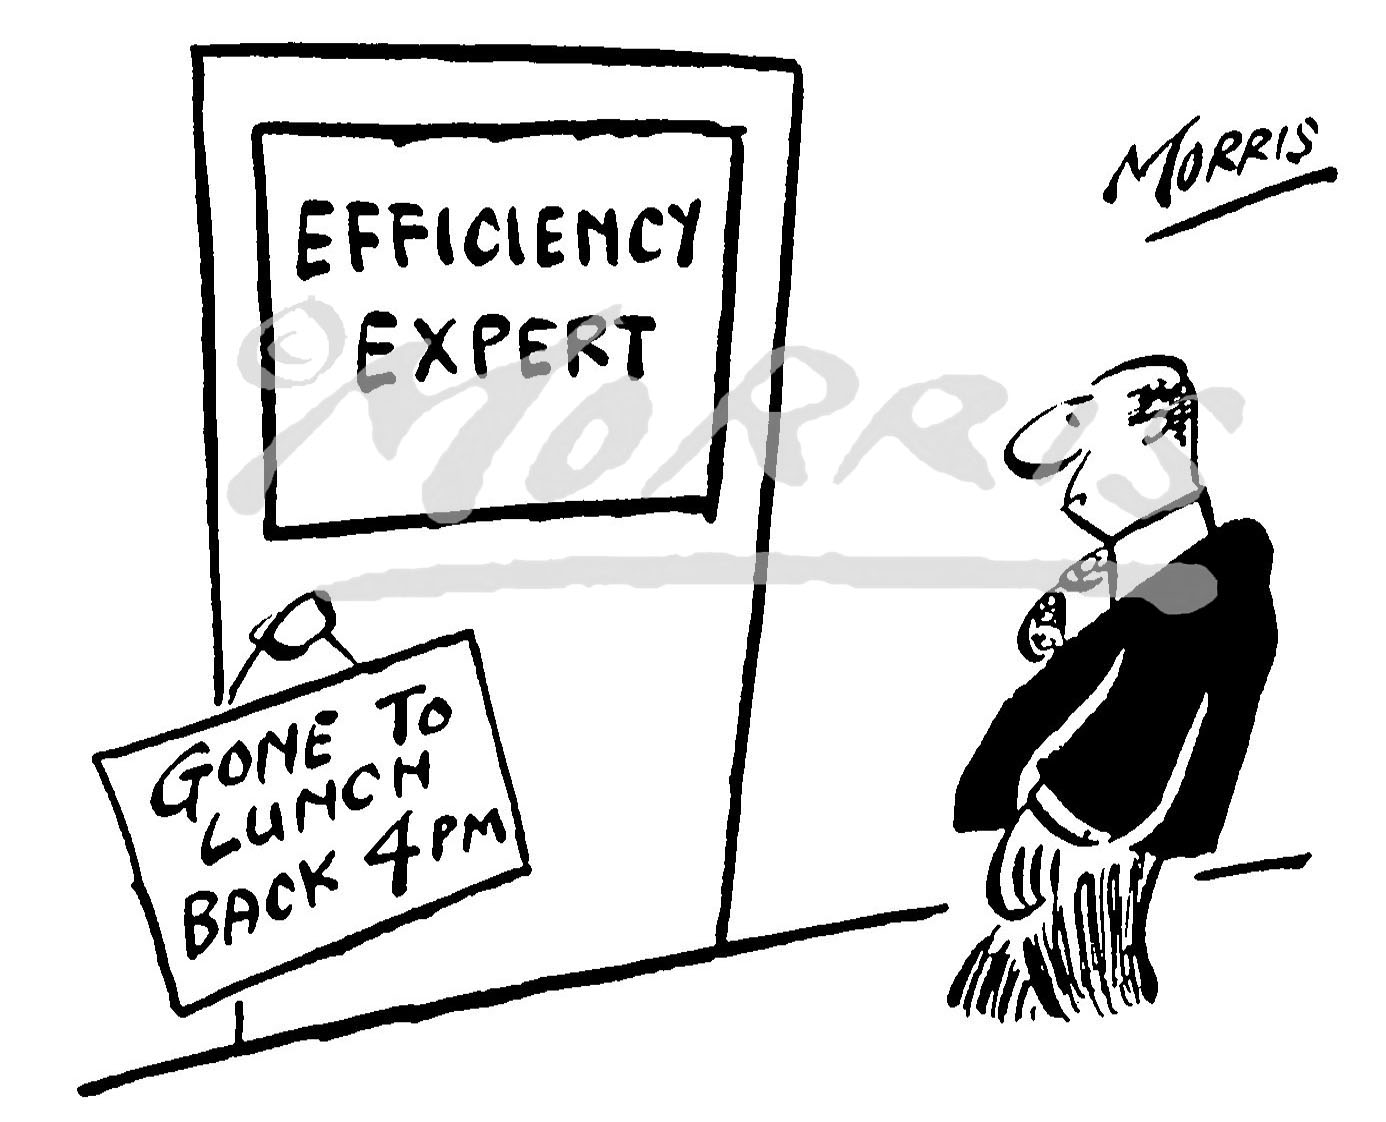 Efficiency consultant expert office business cartoon – Ref: 0245bw